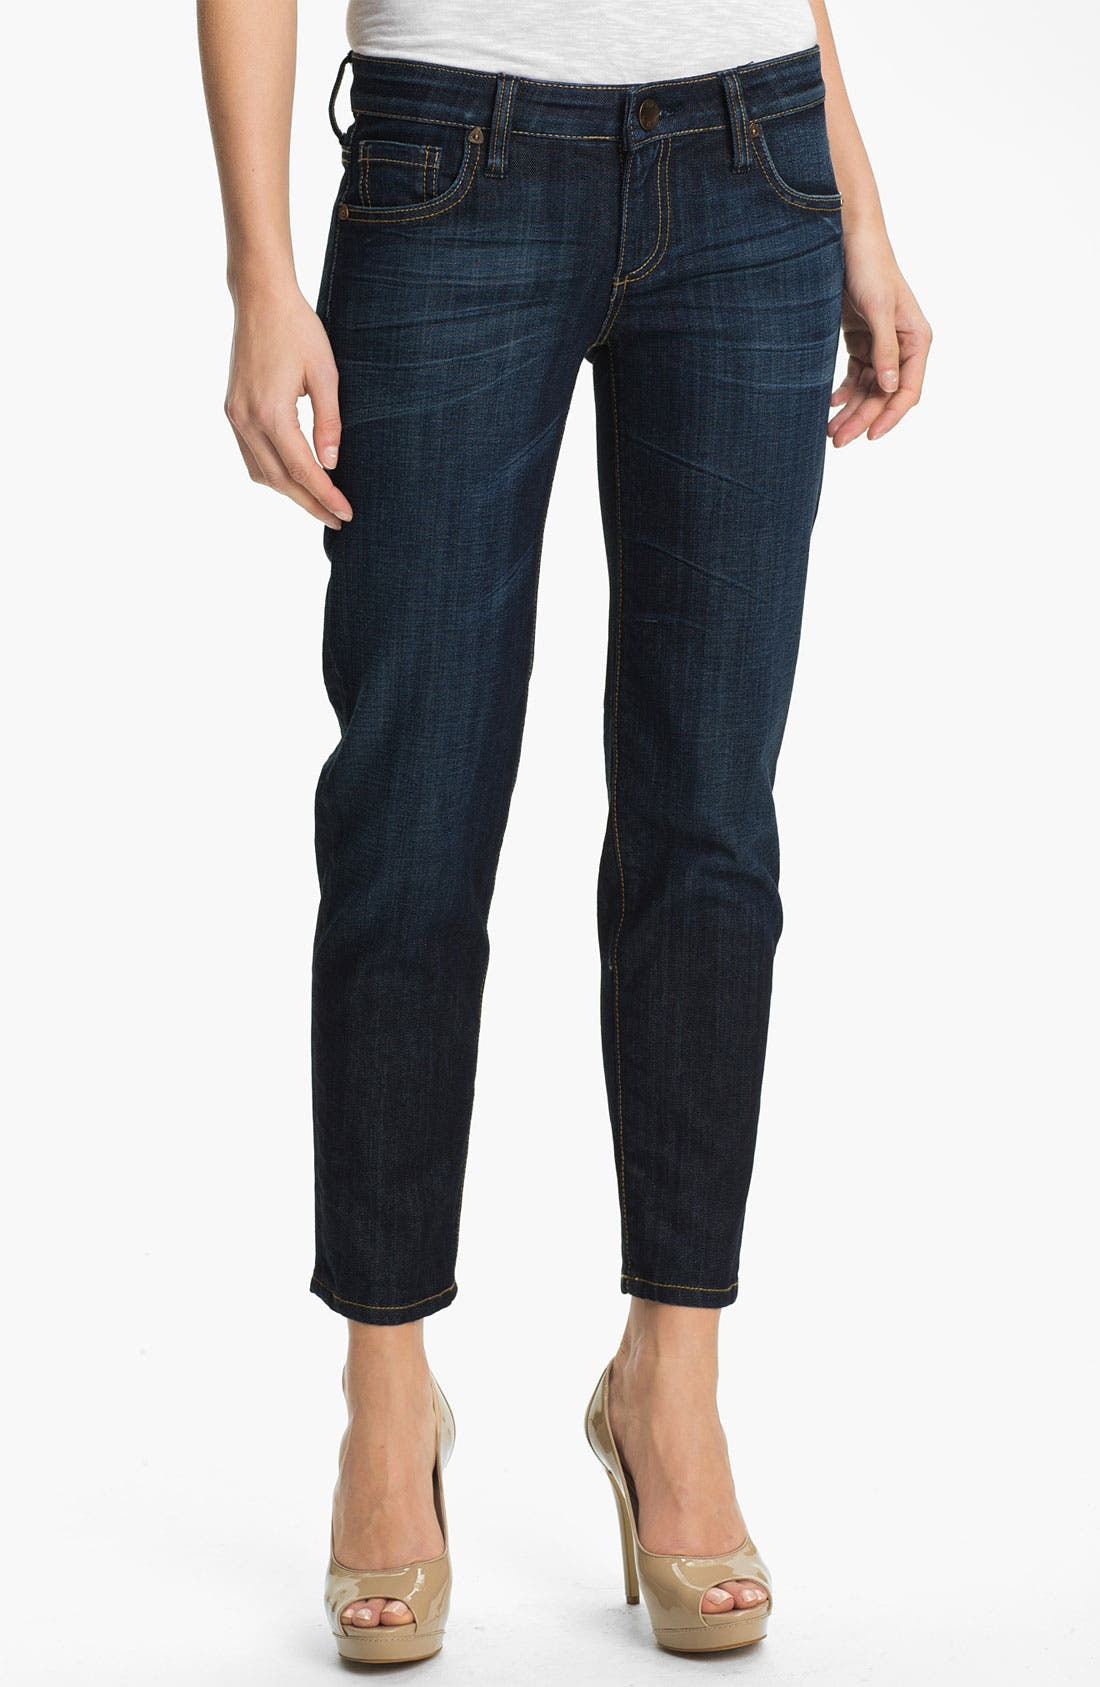 Main Image - KUT from the Kloth 'Audrey' Skinny Jeans (Positive)